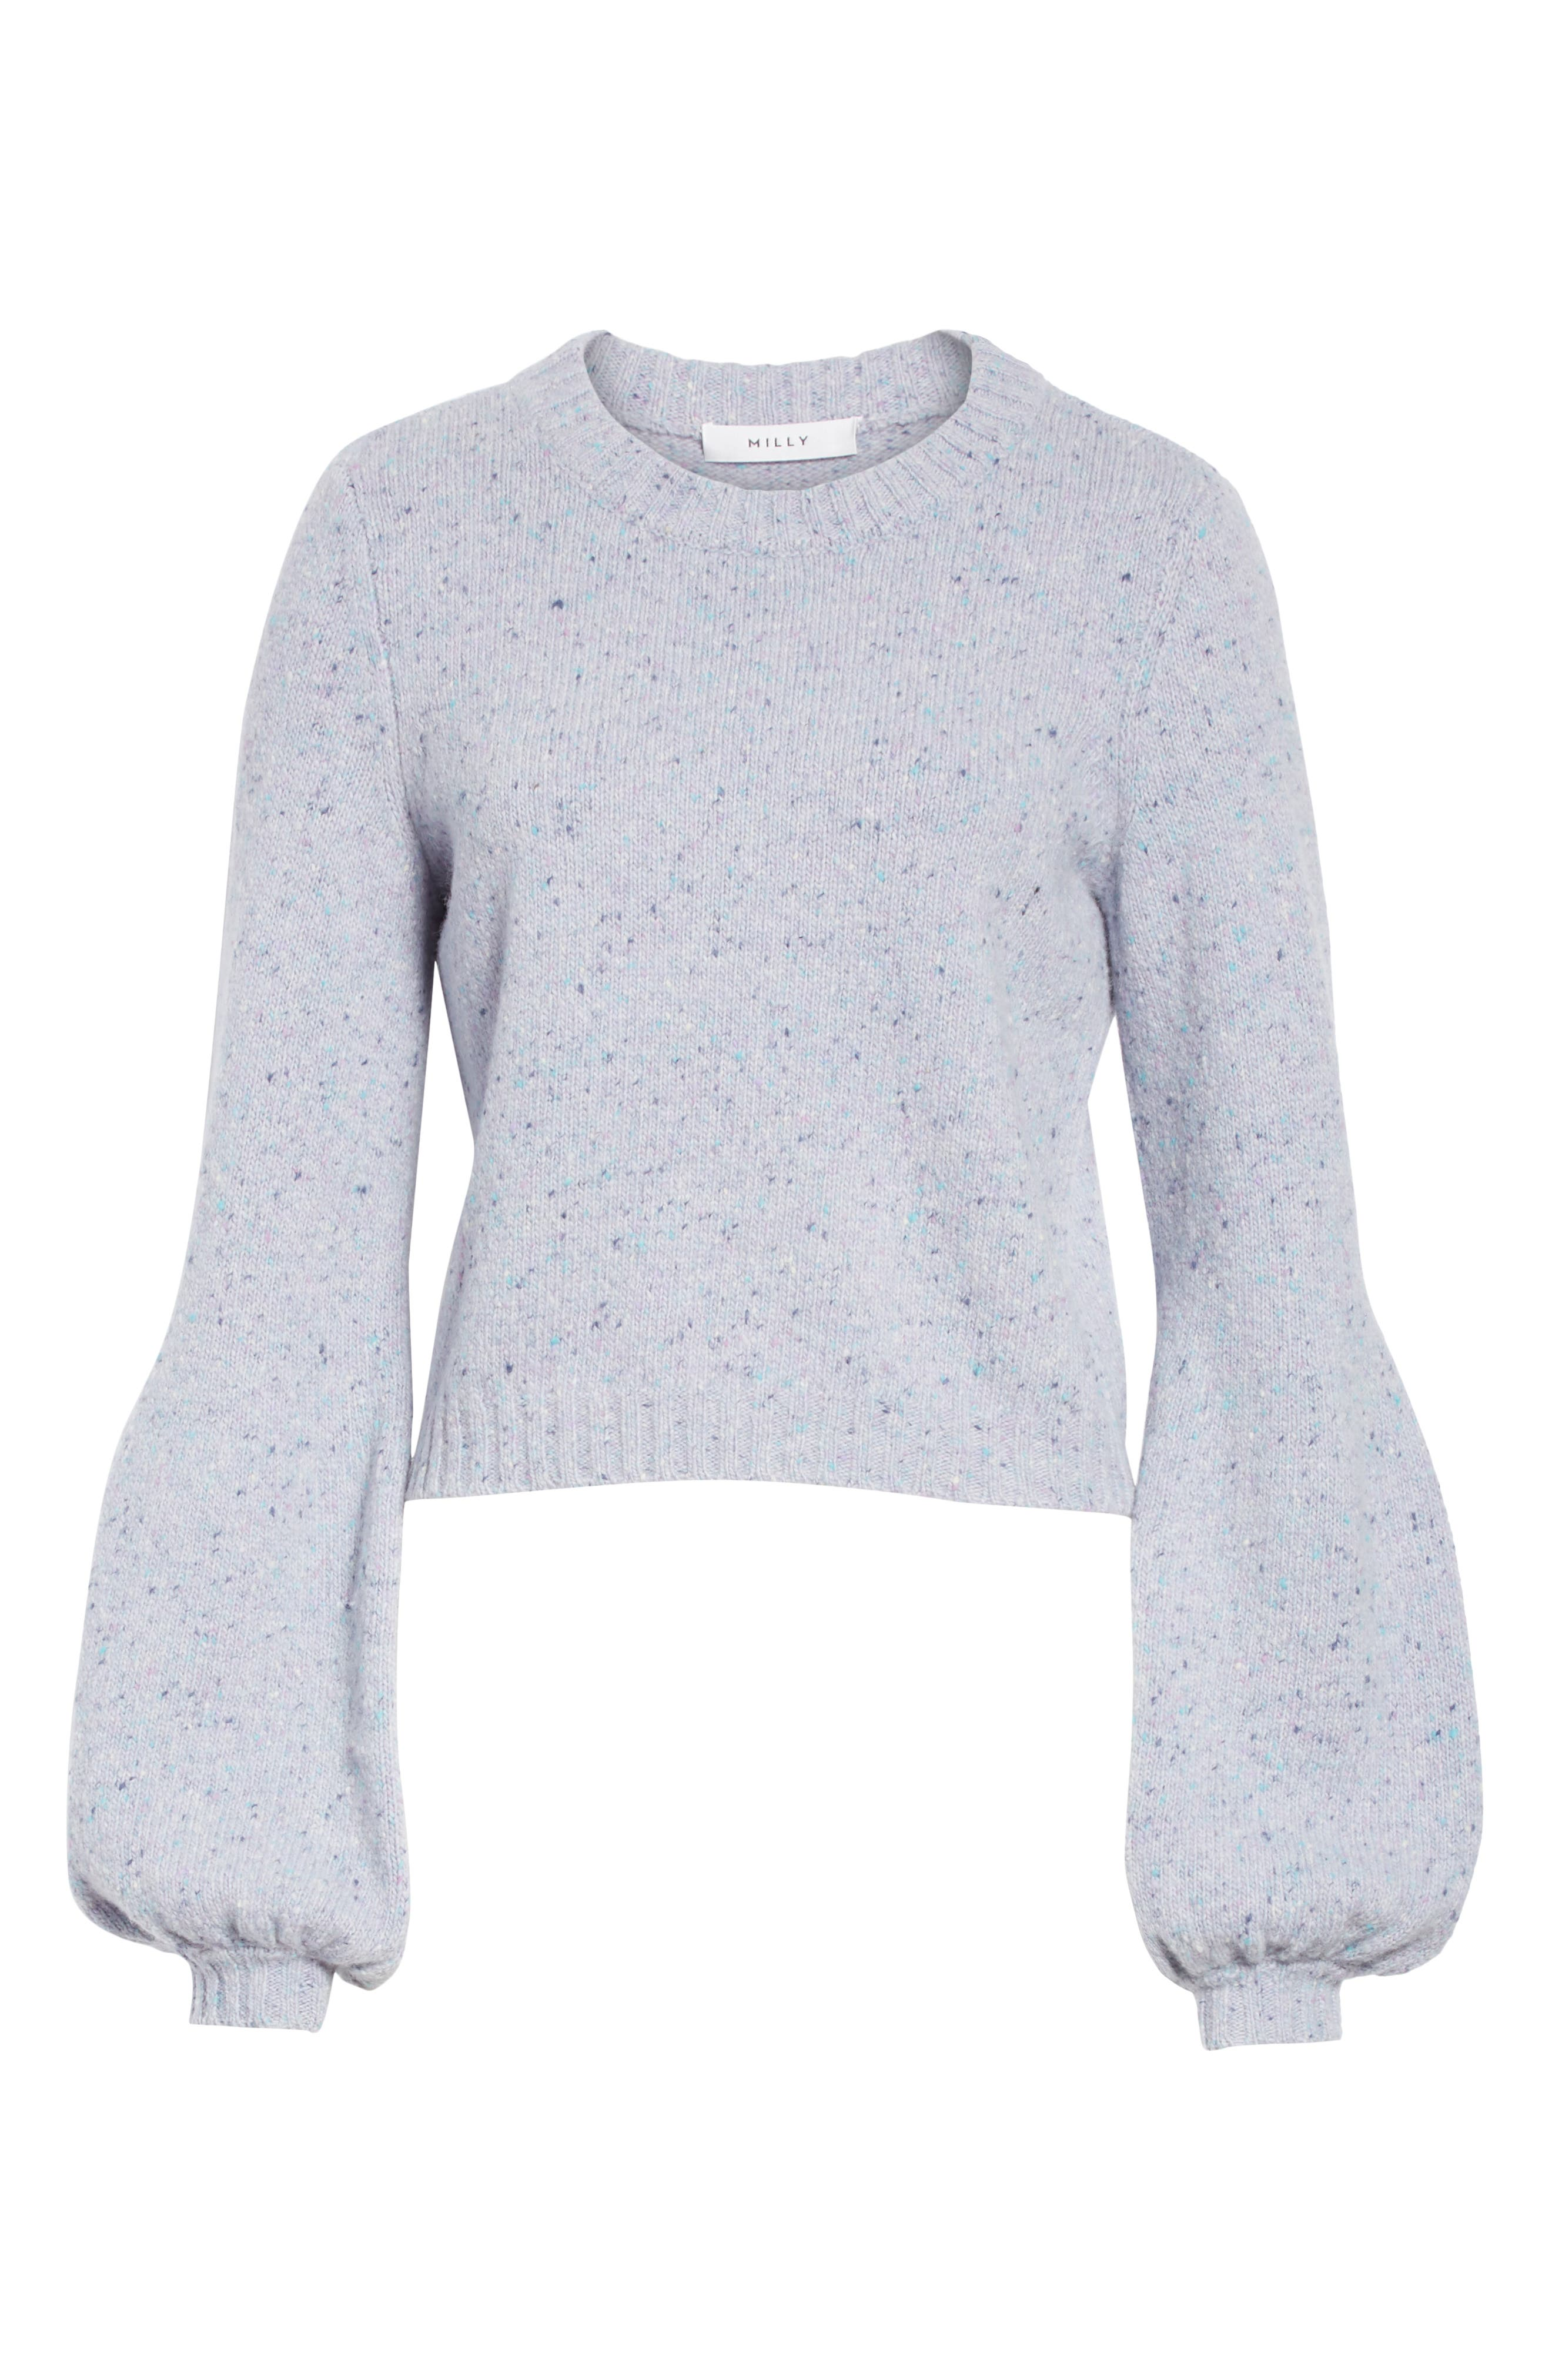 Bell Sleeve Wool Blend Sweater,                             Alternate thumbnail 6, color,                             BABY BLUE